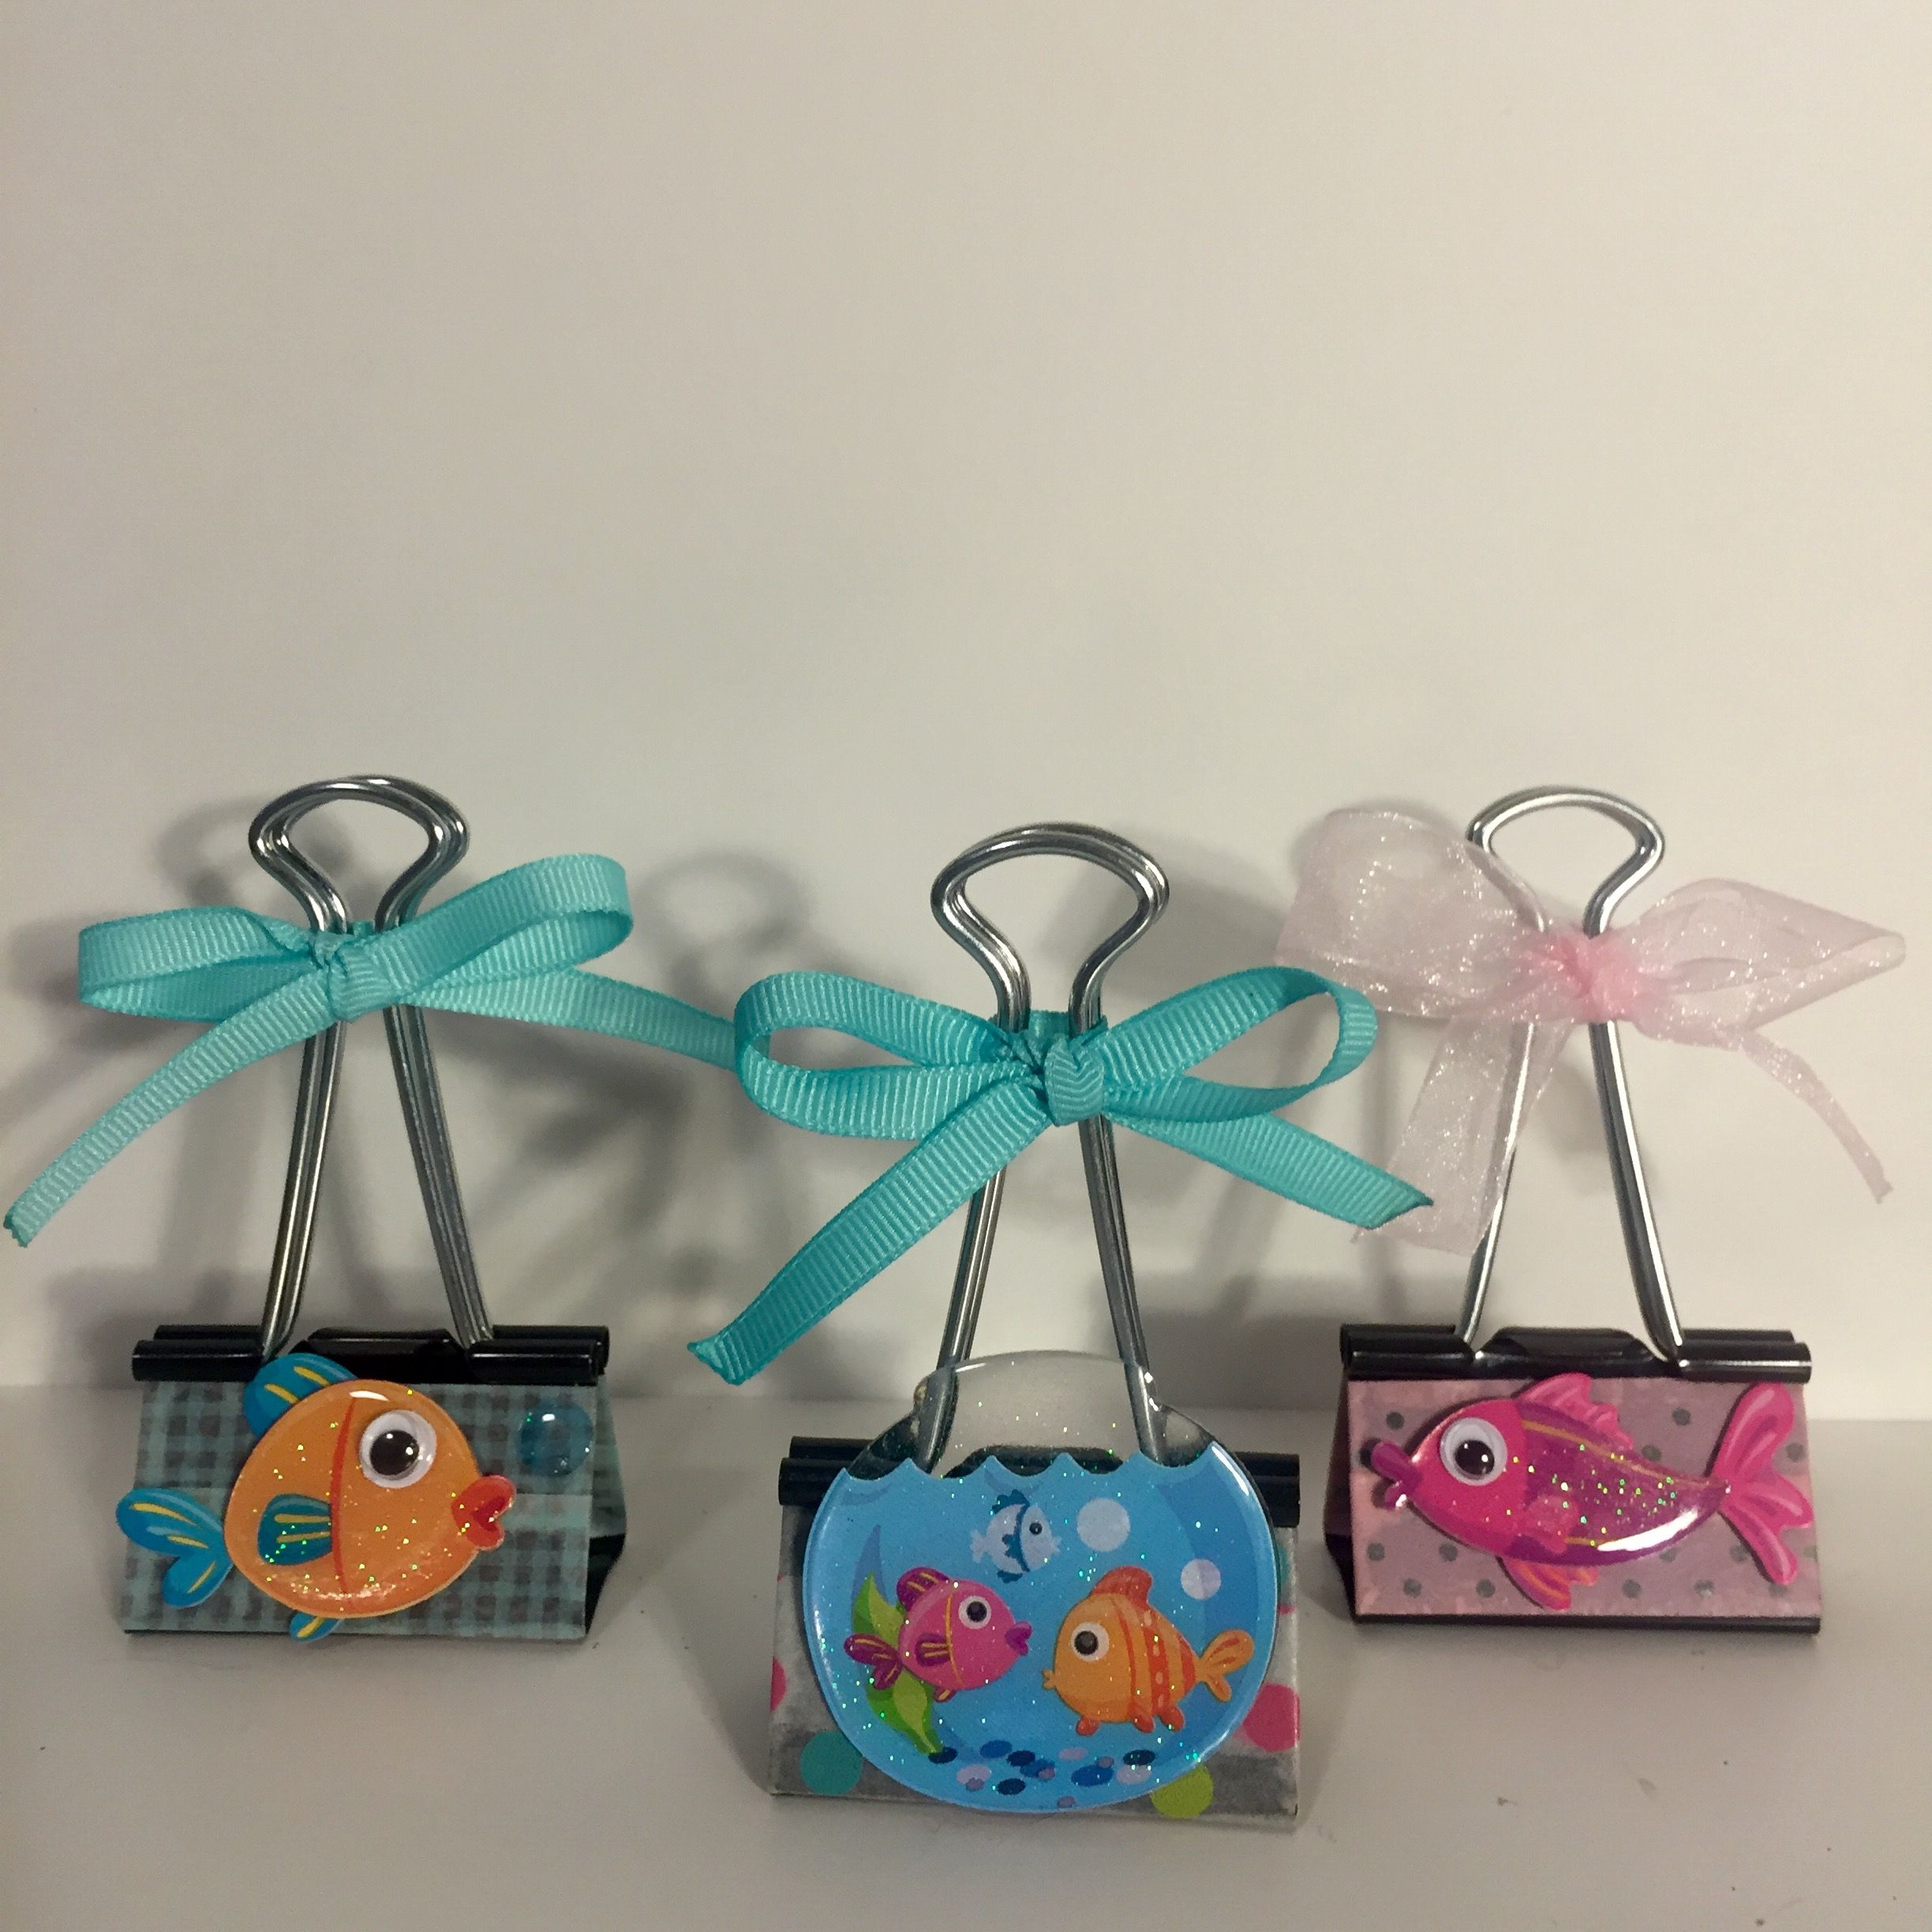 Pin by Frannie on Binder Clips Paper clips diy, Paper